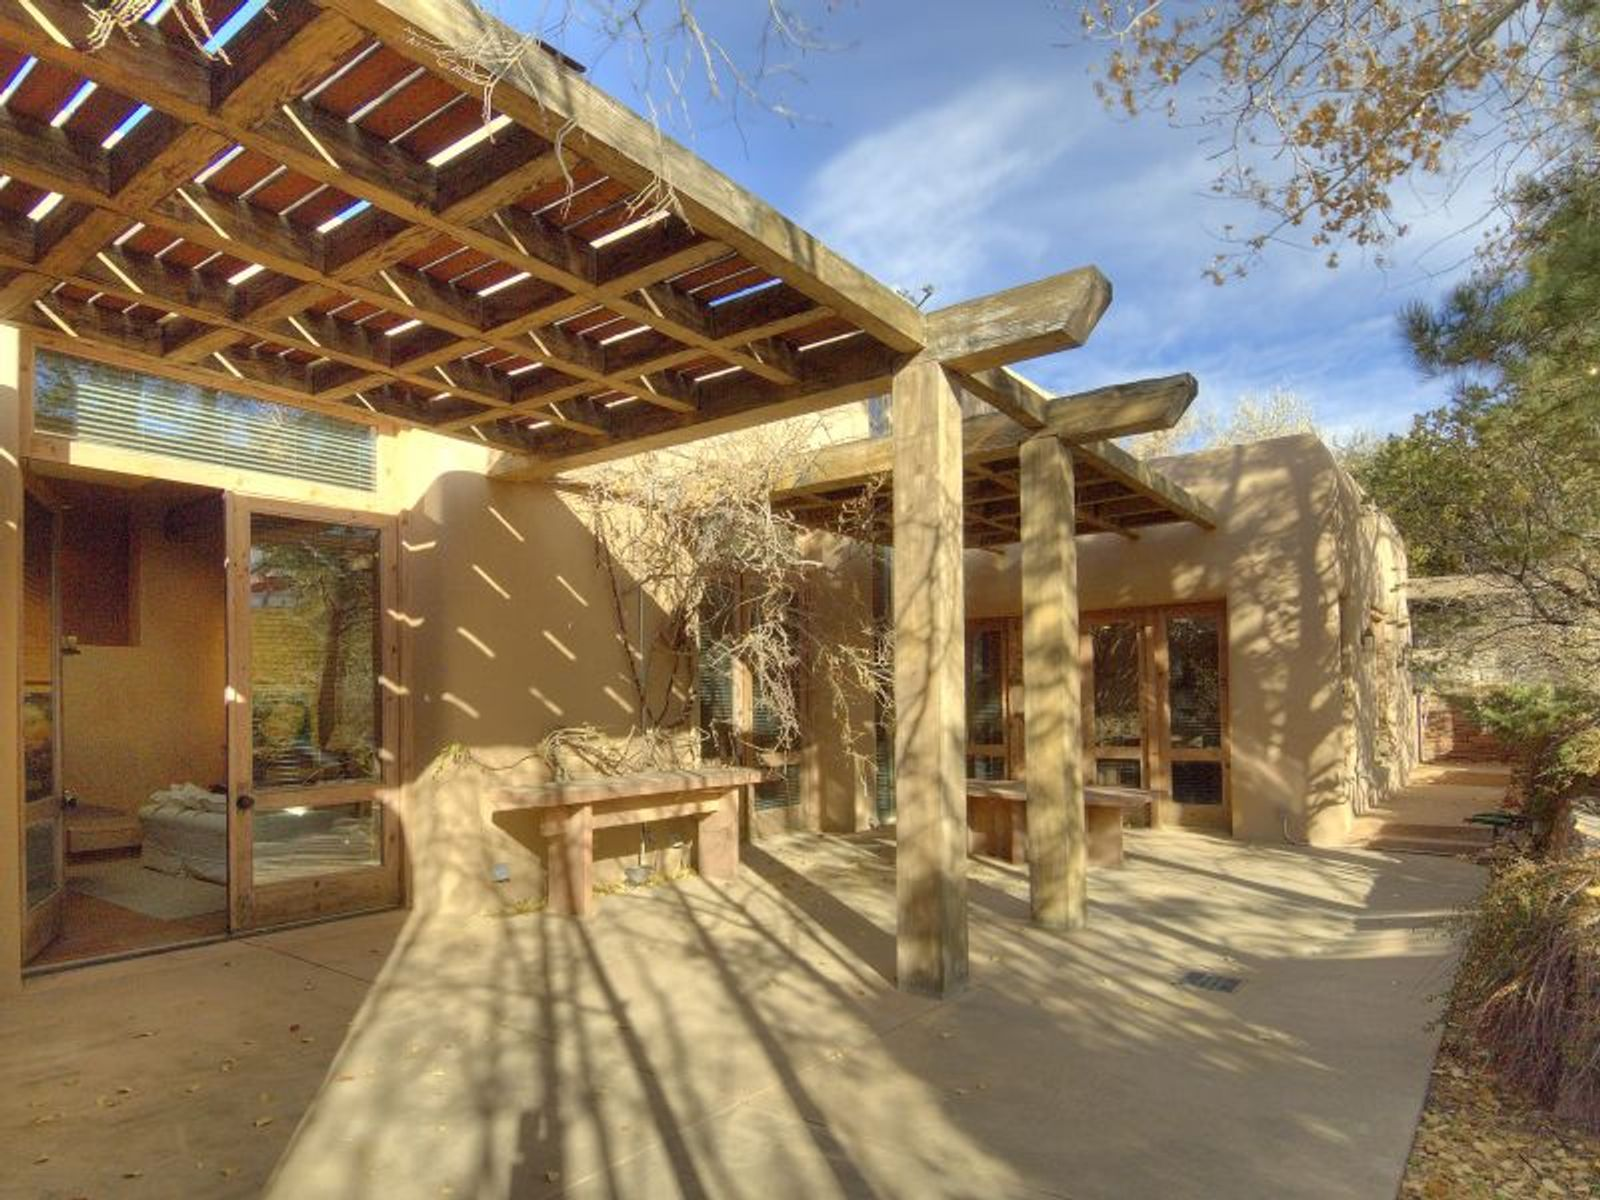 263 El Duane Court, Santa Fe NM Single Family Home - Santa Fe Real Estate